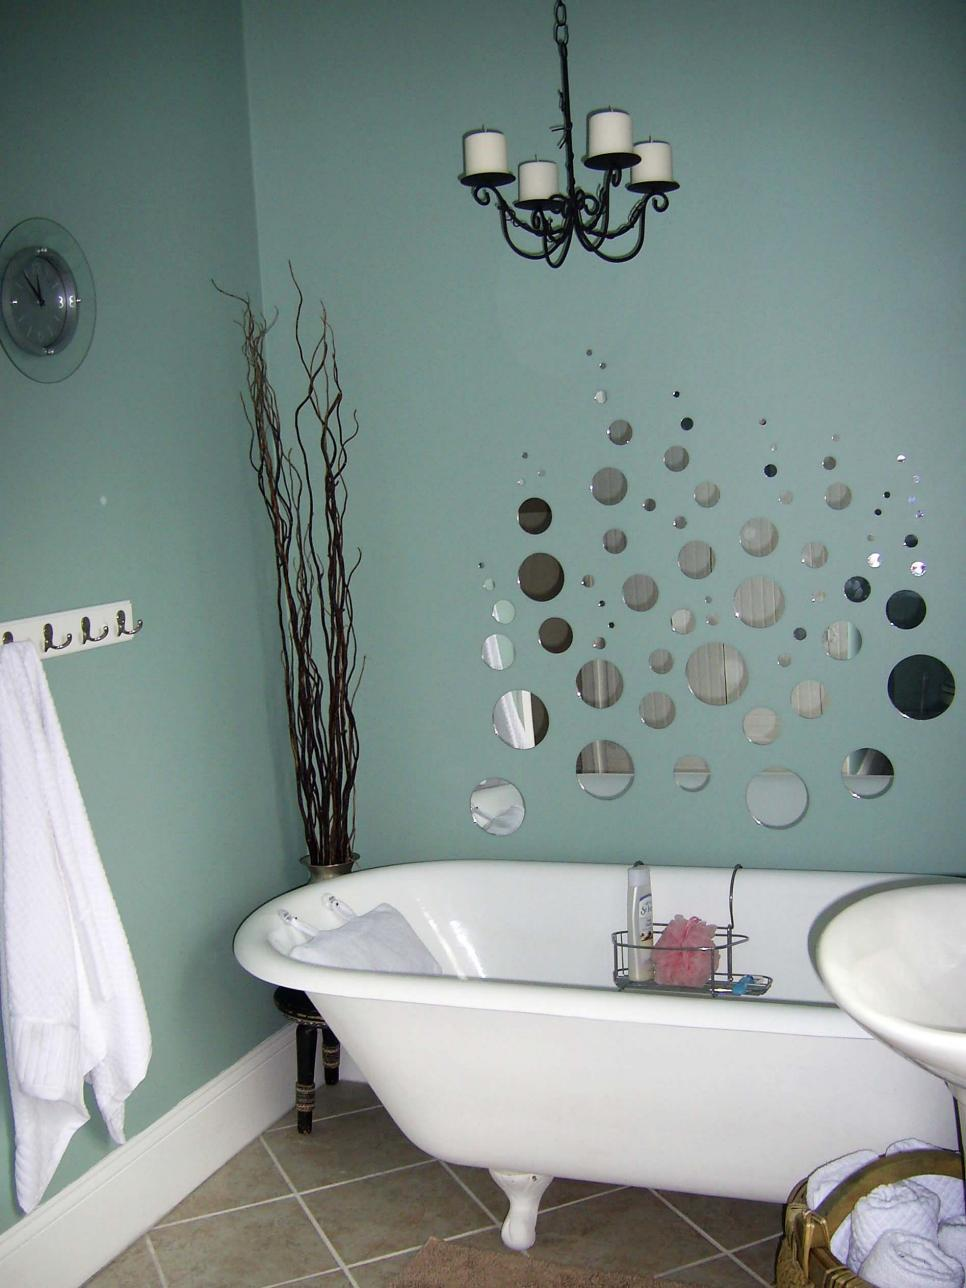 Bathrooms on a budget our 10 favorites from rate my space diy Decorating ideas for bathrooms on a budget